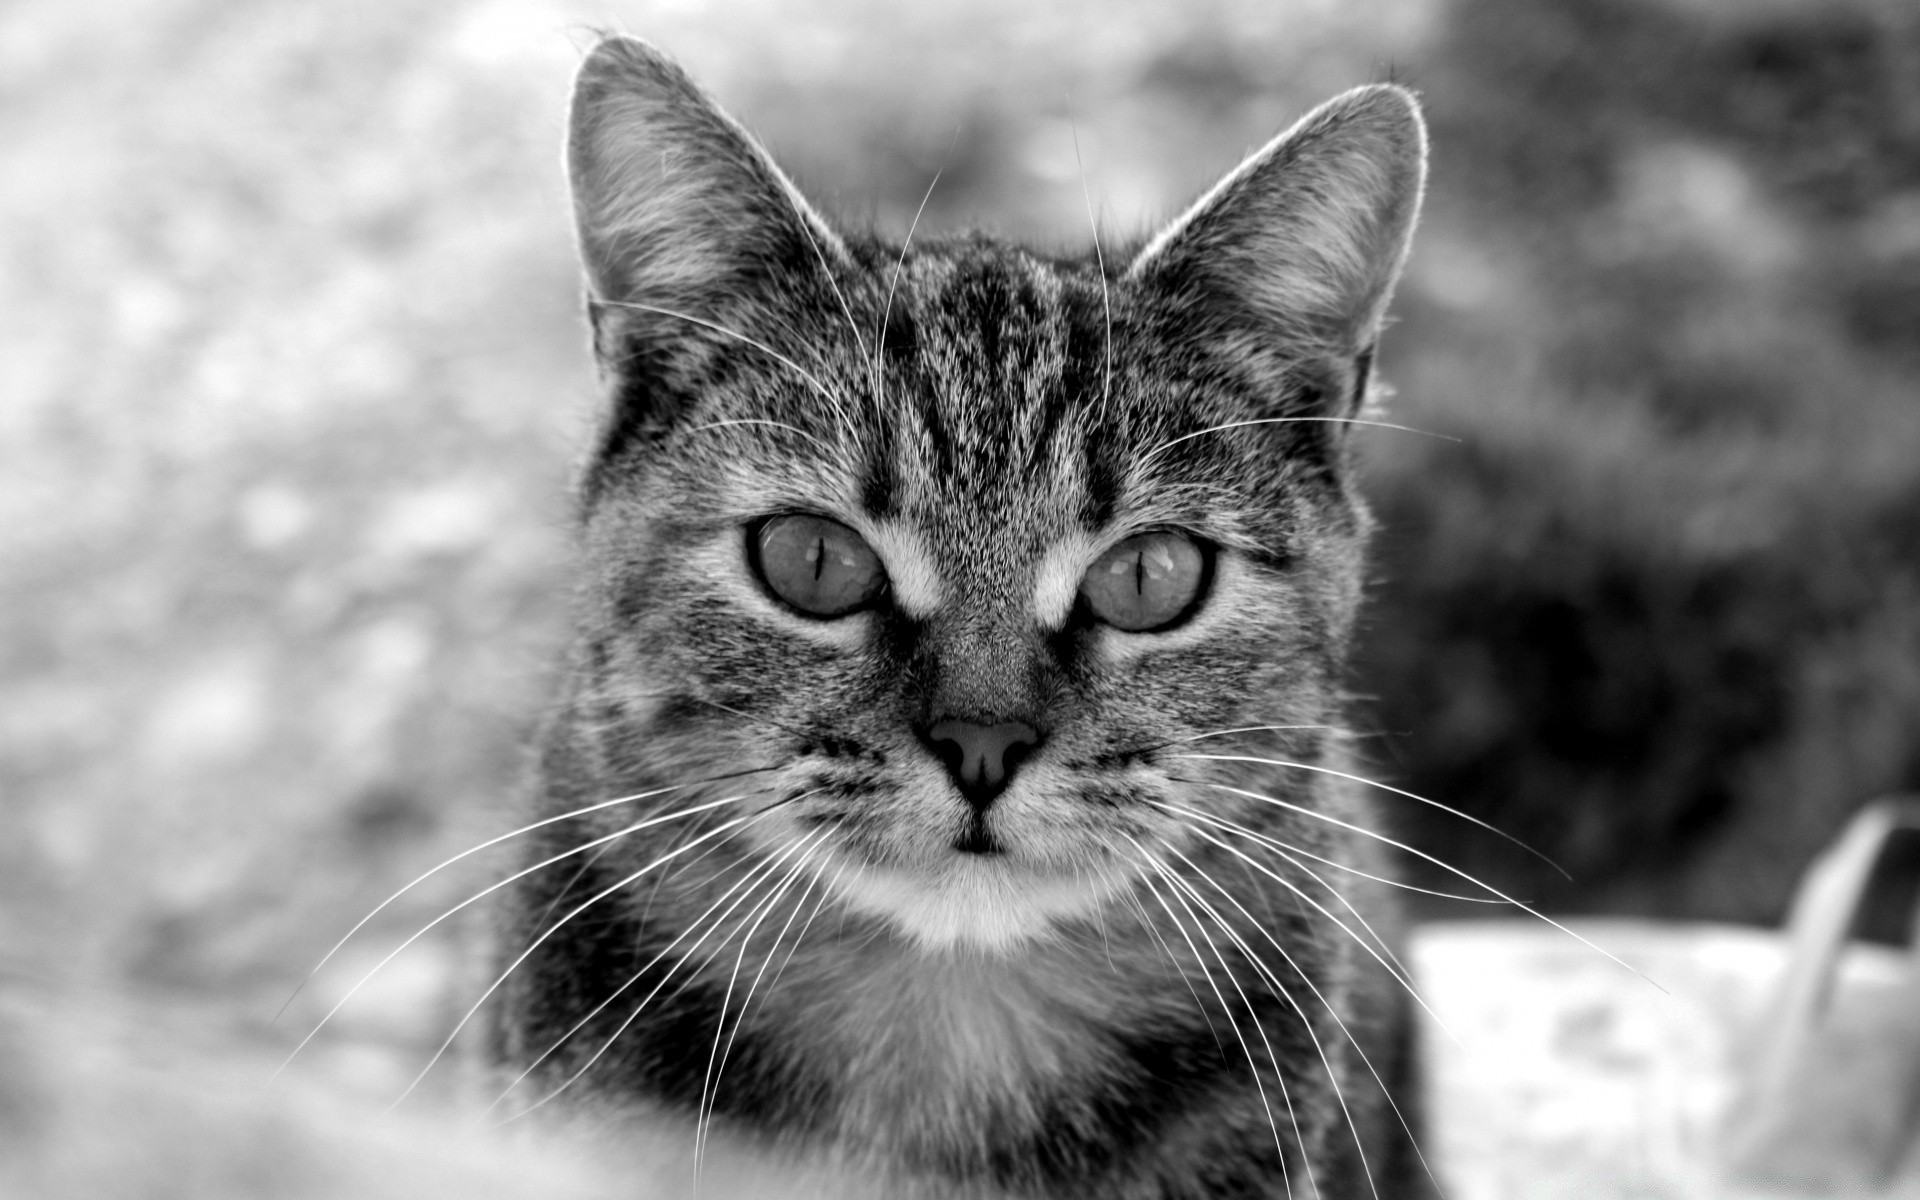 black and white cat animal cute fur pet portrait nature kitten mammal eye domestic